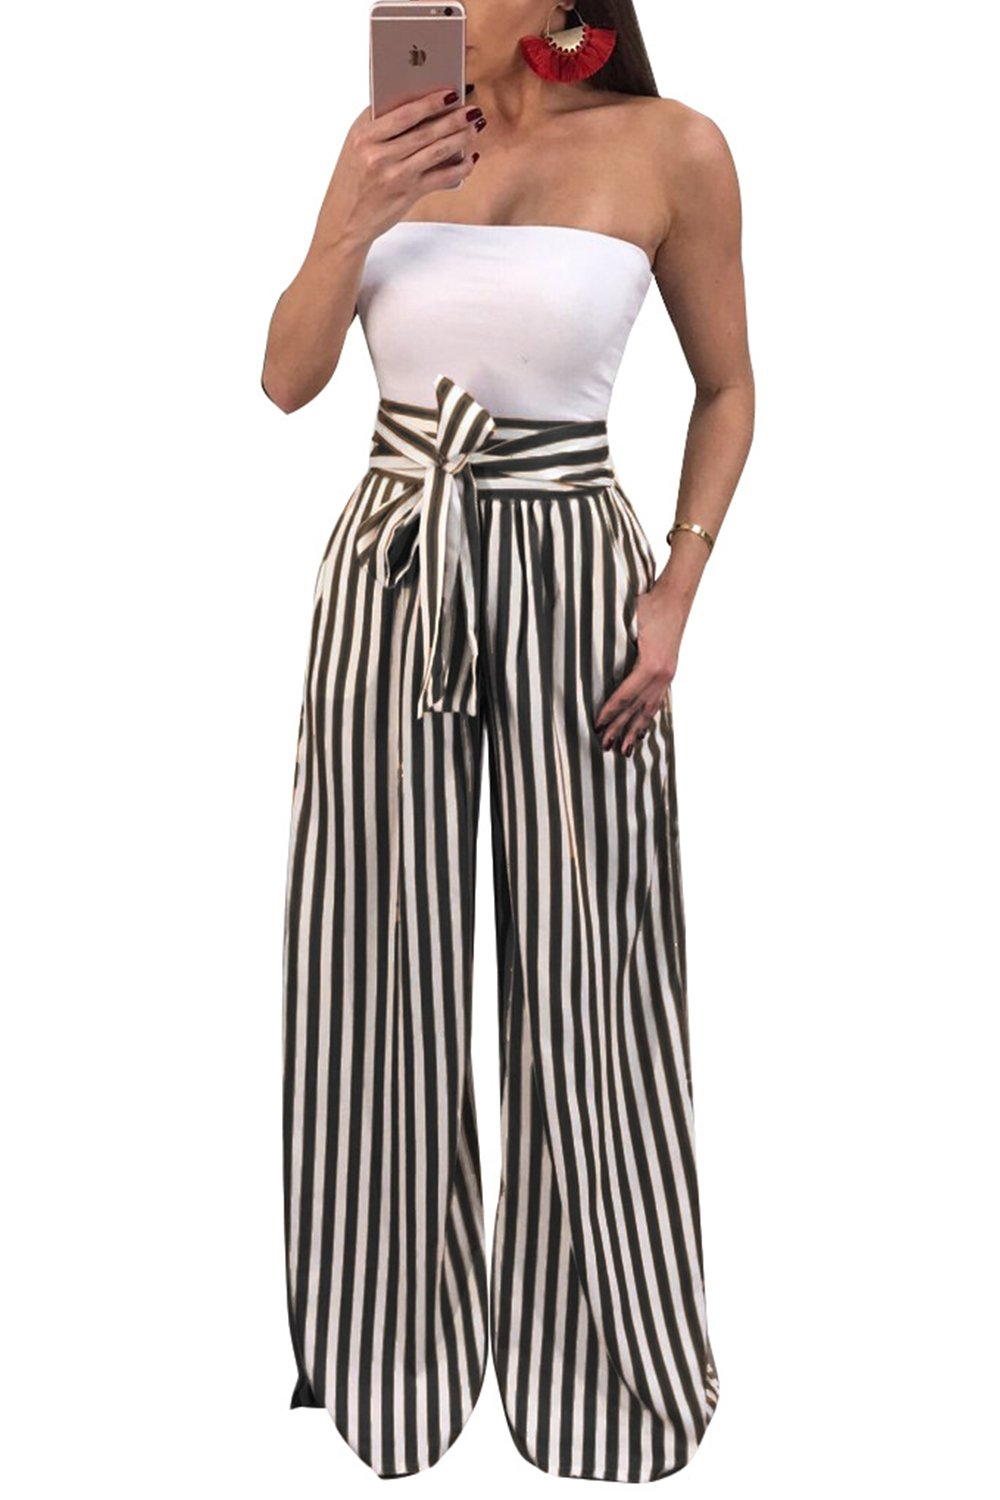 JeanewPole1 Women Casual Striped High Waisted Wide Leg Belted Palazzo Harem Pants (X-Large, Black)